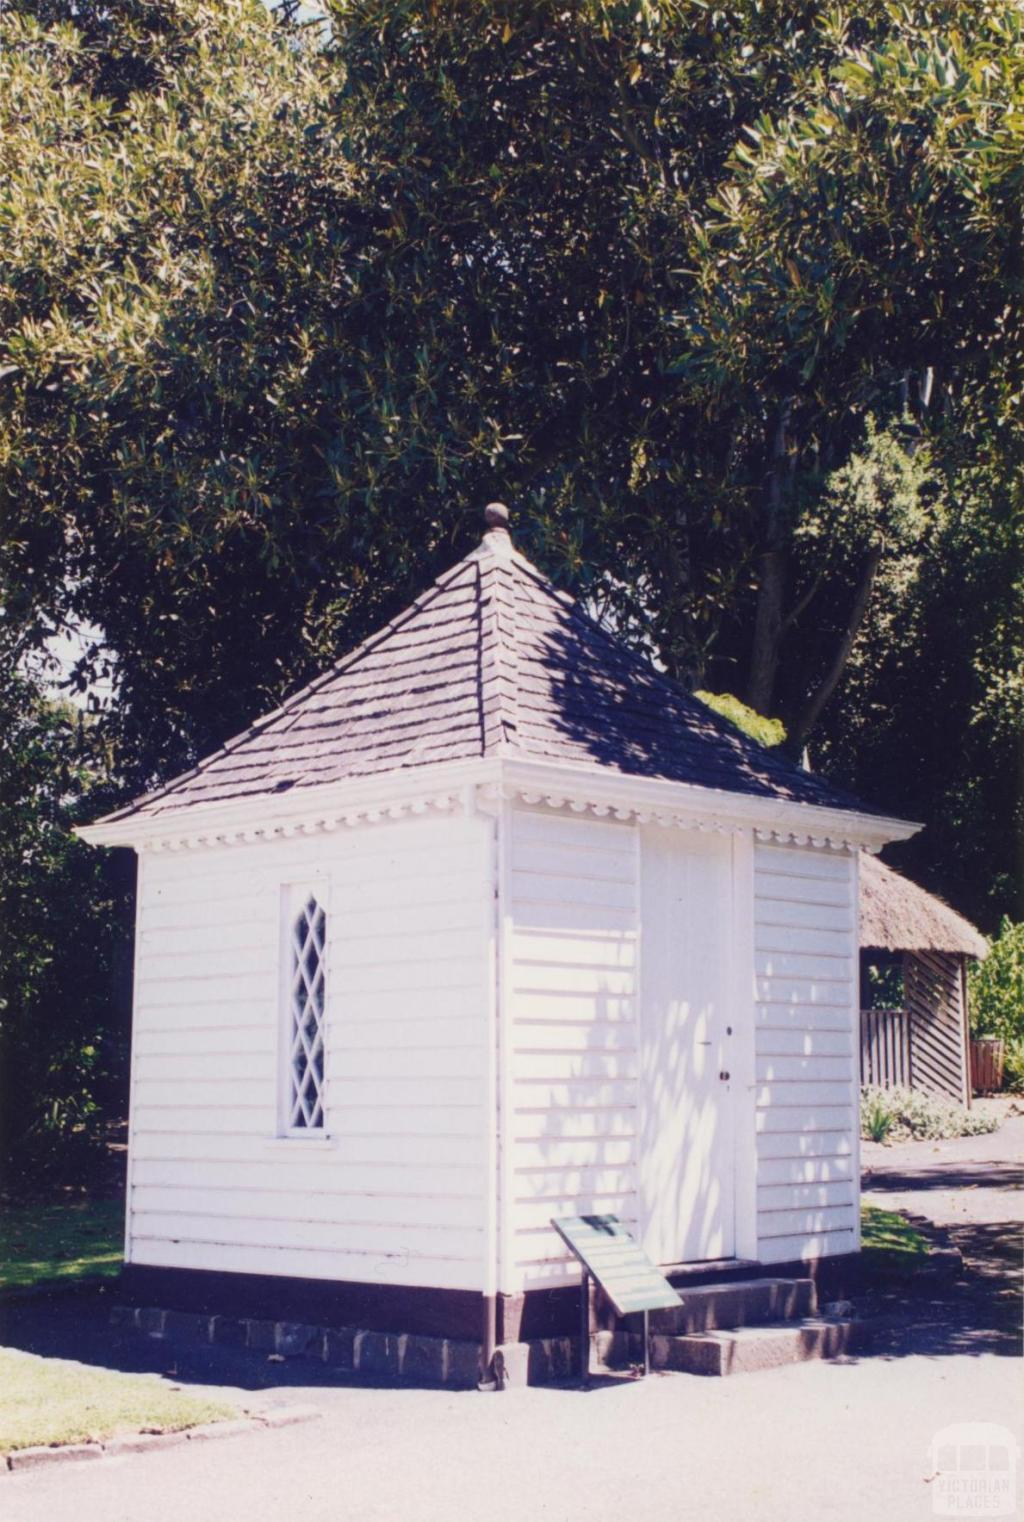 Customs House, Botanical Gardens, Geelong, 1997